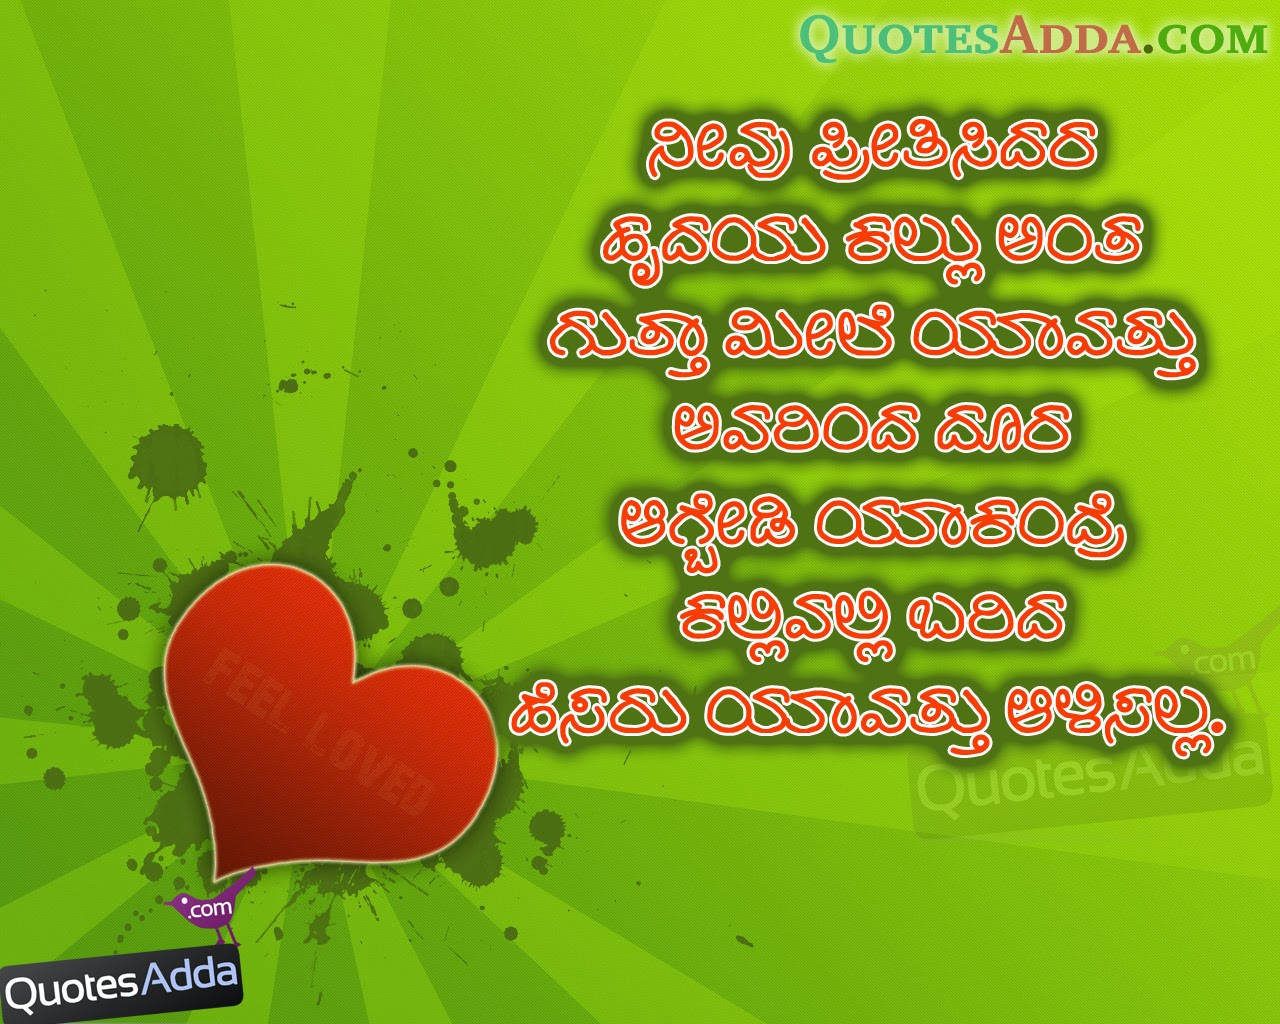 Kannada Love Quotes : Image Name: Kannada Love Quotes Quotesadda